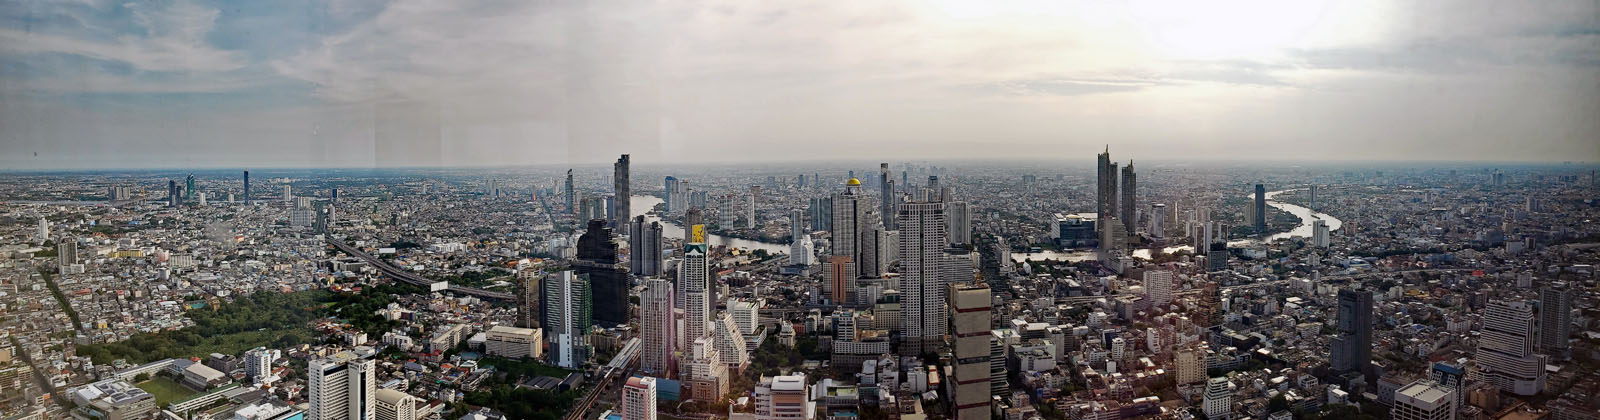 Panoramic view from the MahaNakhon looking East towards the Chao Praya River.